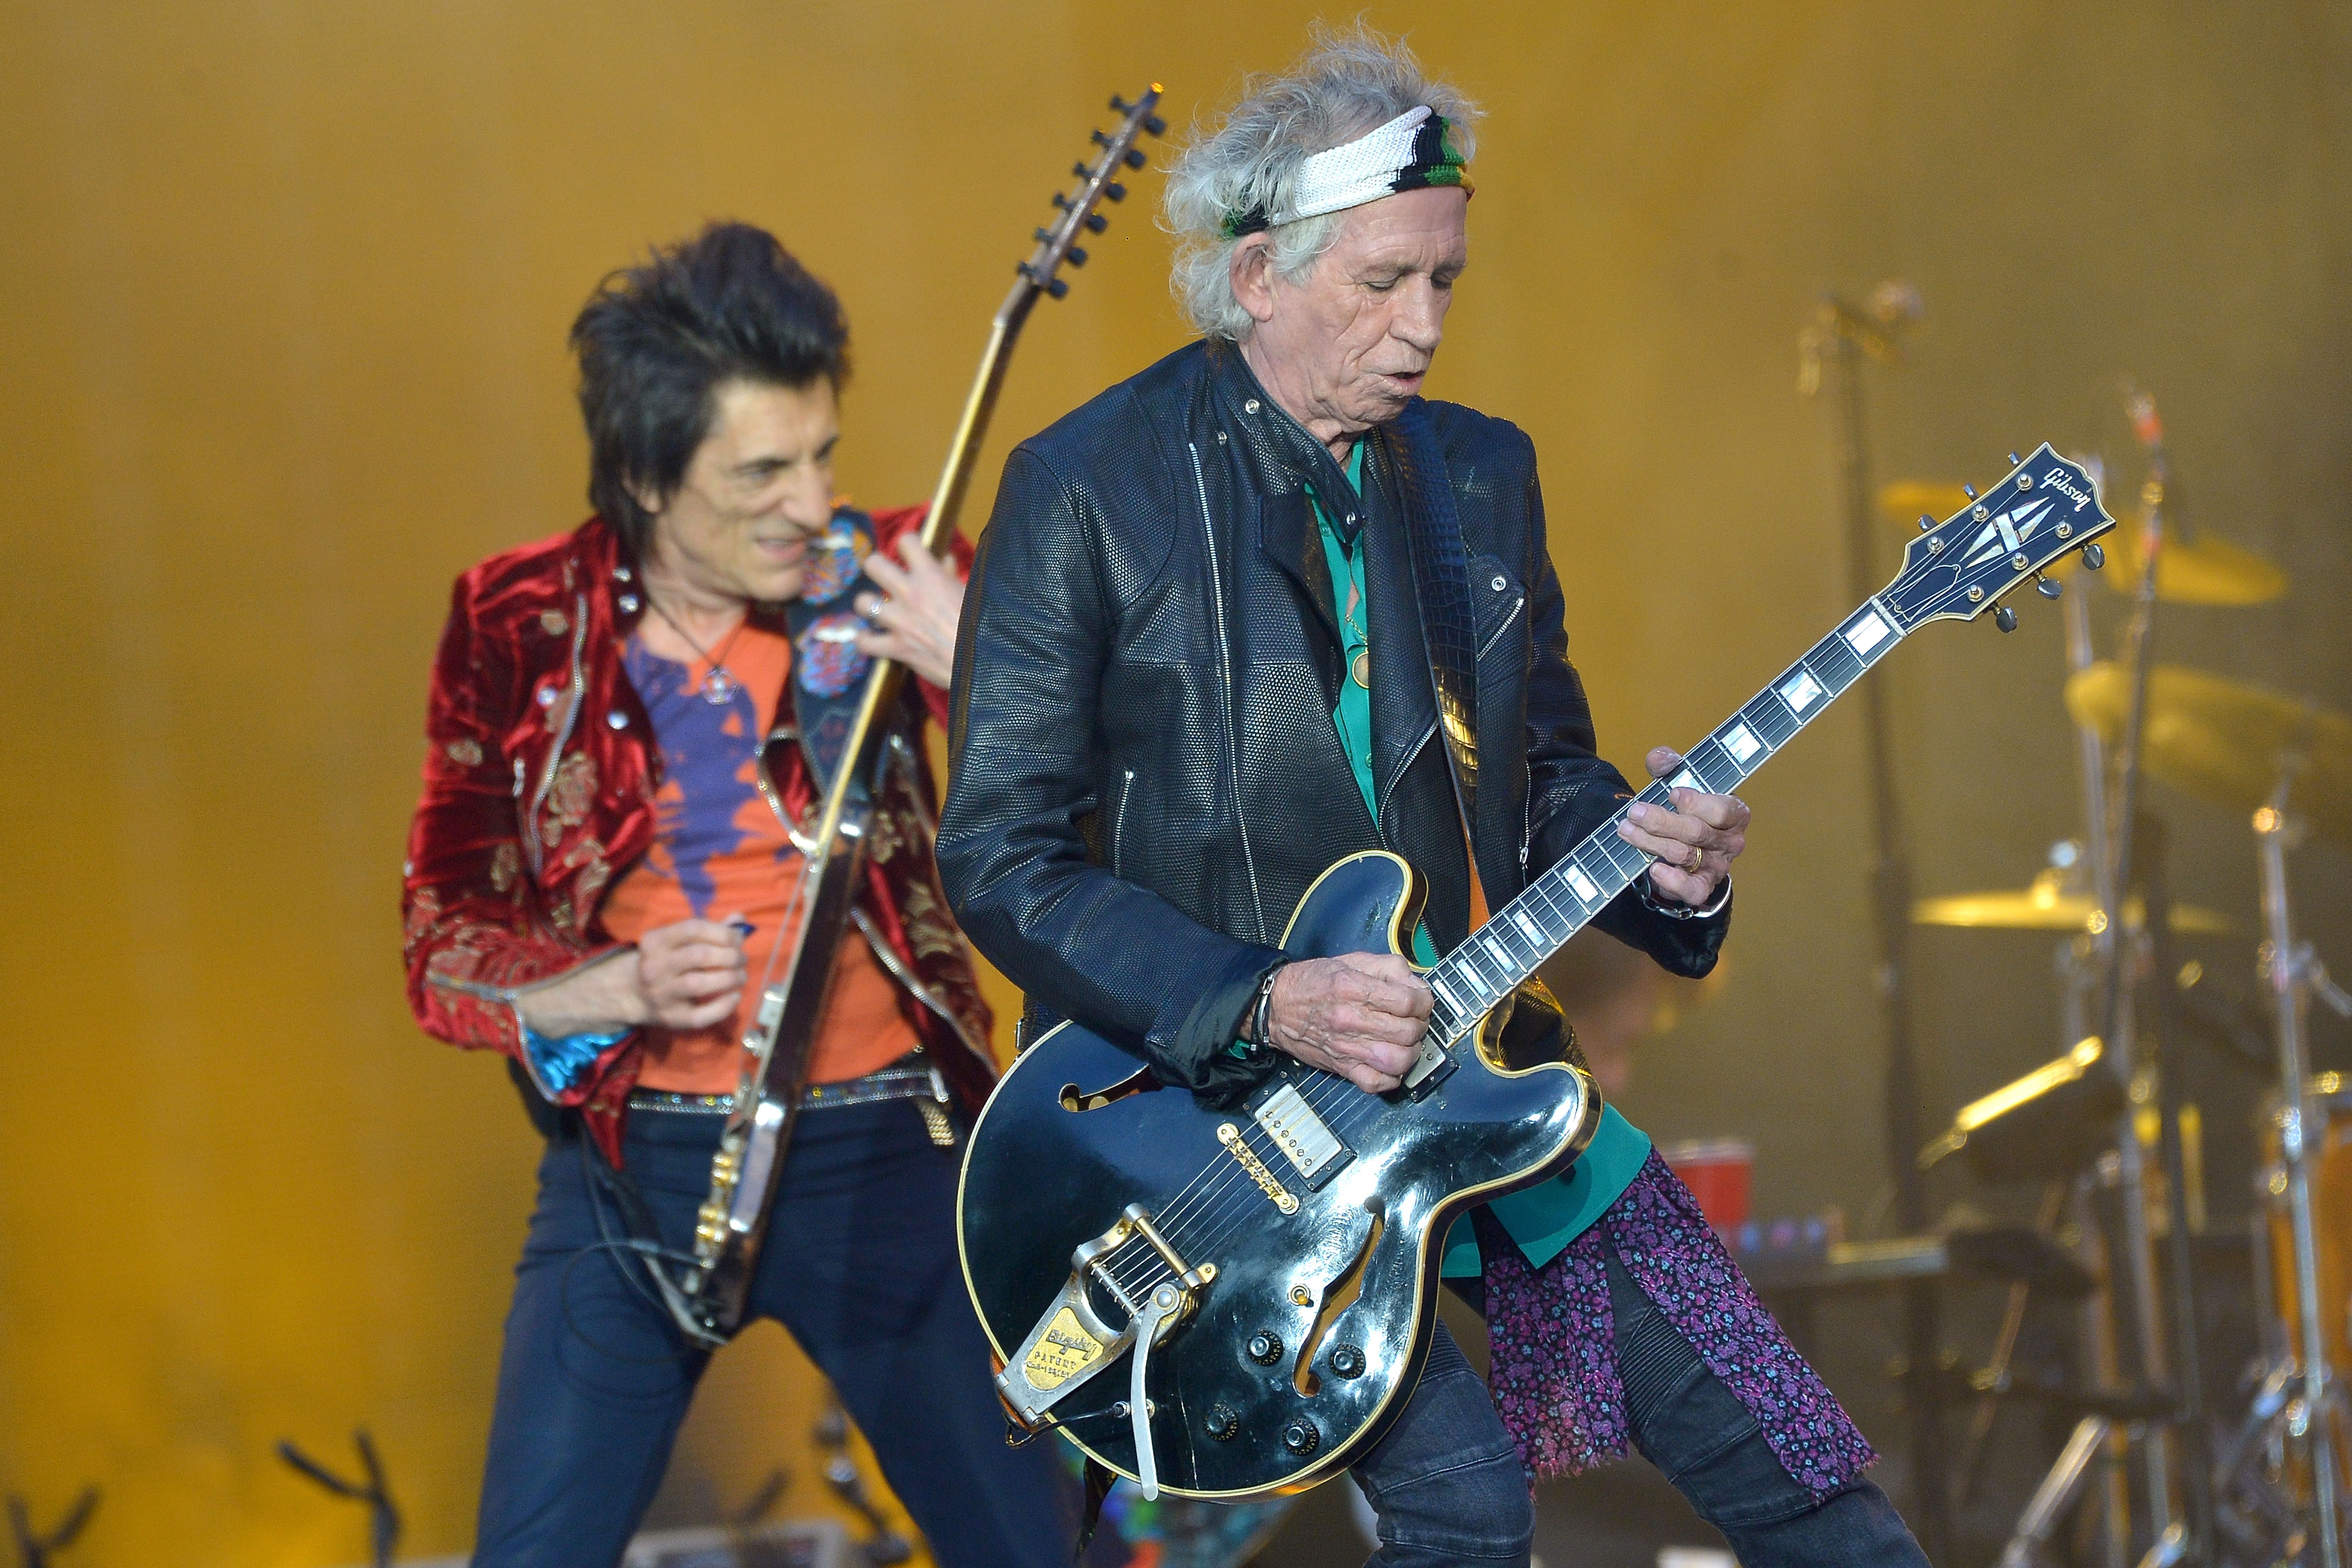 Rolling Stones in Twickenham: Ronnie Wood und Keith Richards on Fire